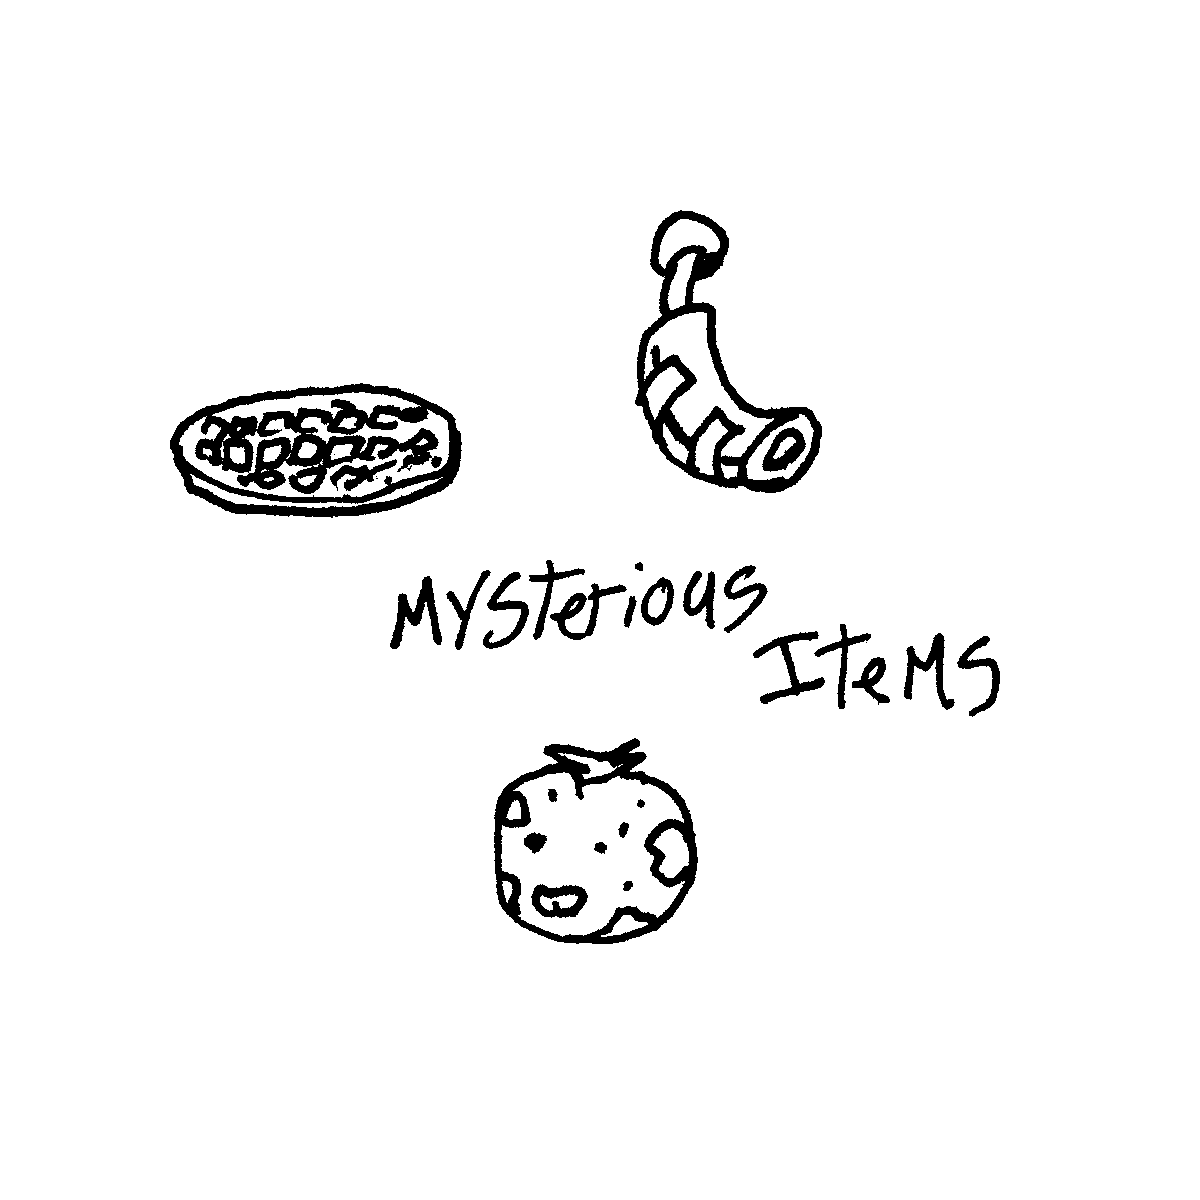 mysterious items cartoon doodle